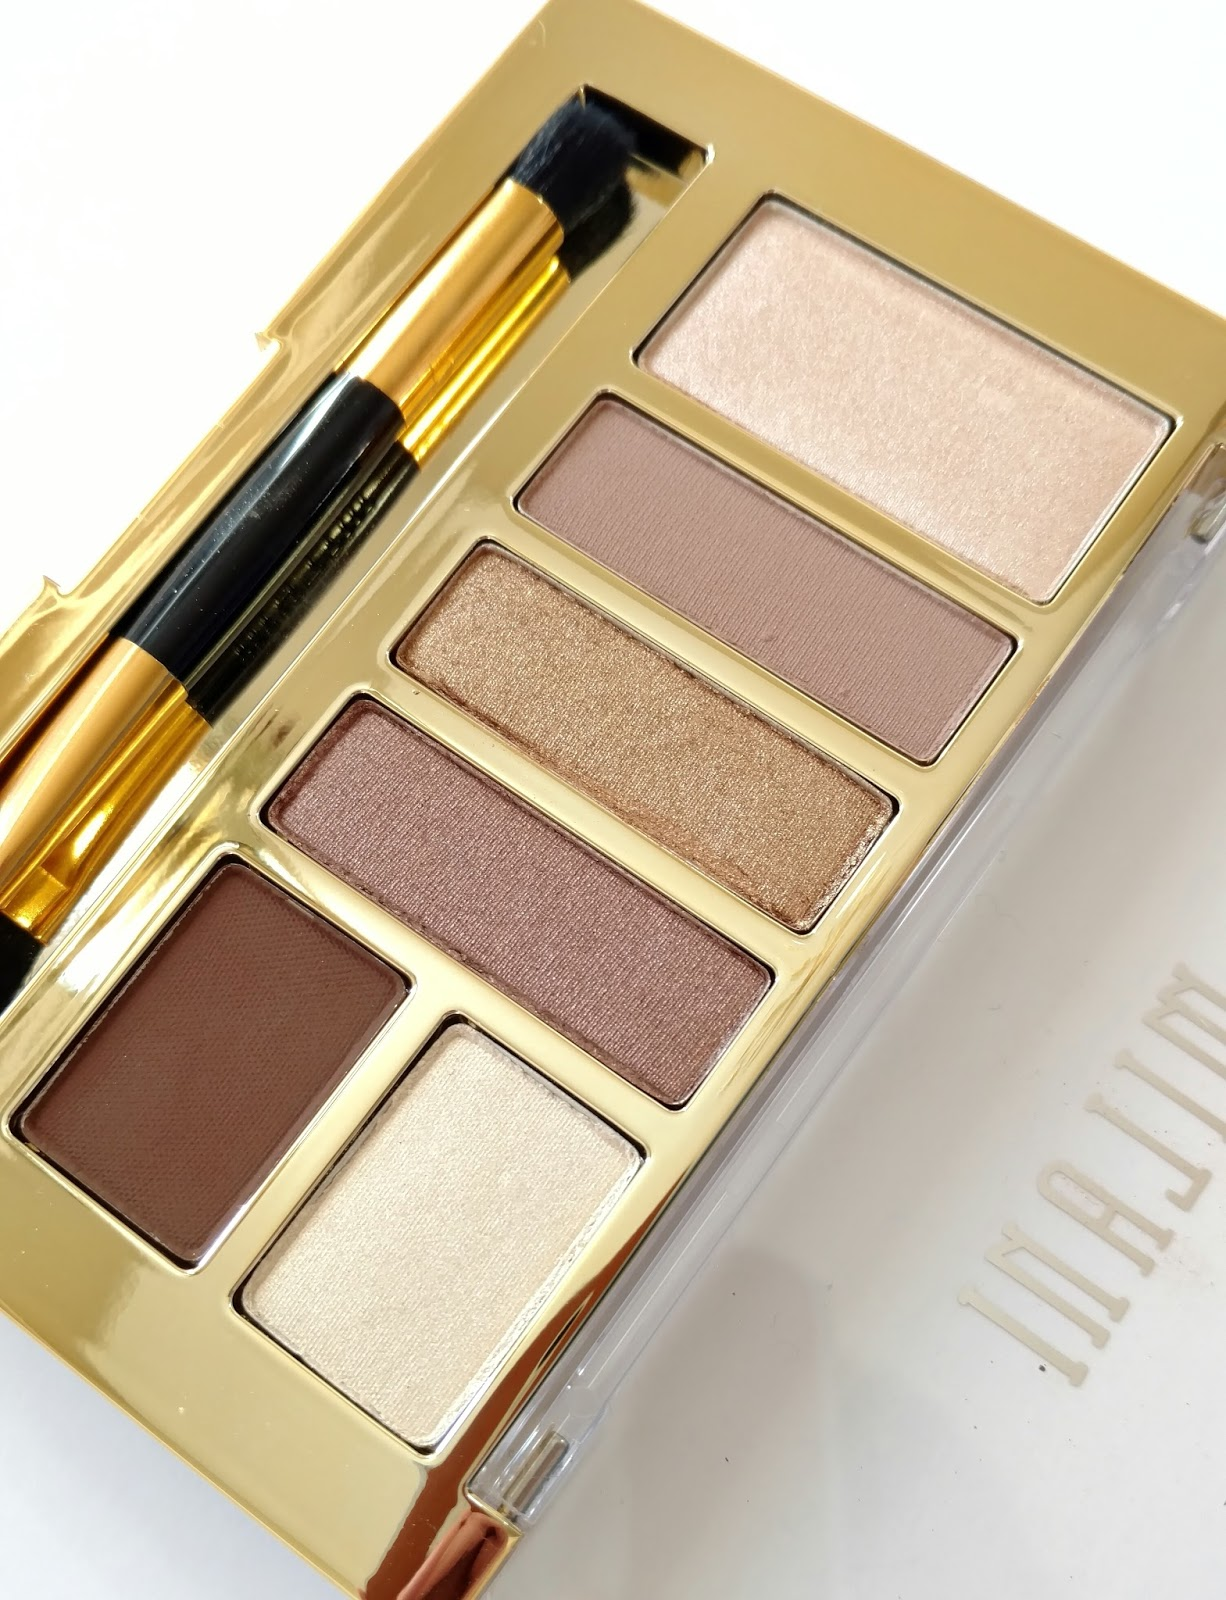 Eyeshadow Palette: Milani Everyday Eyes Eyeshadow Palette Review